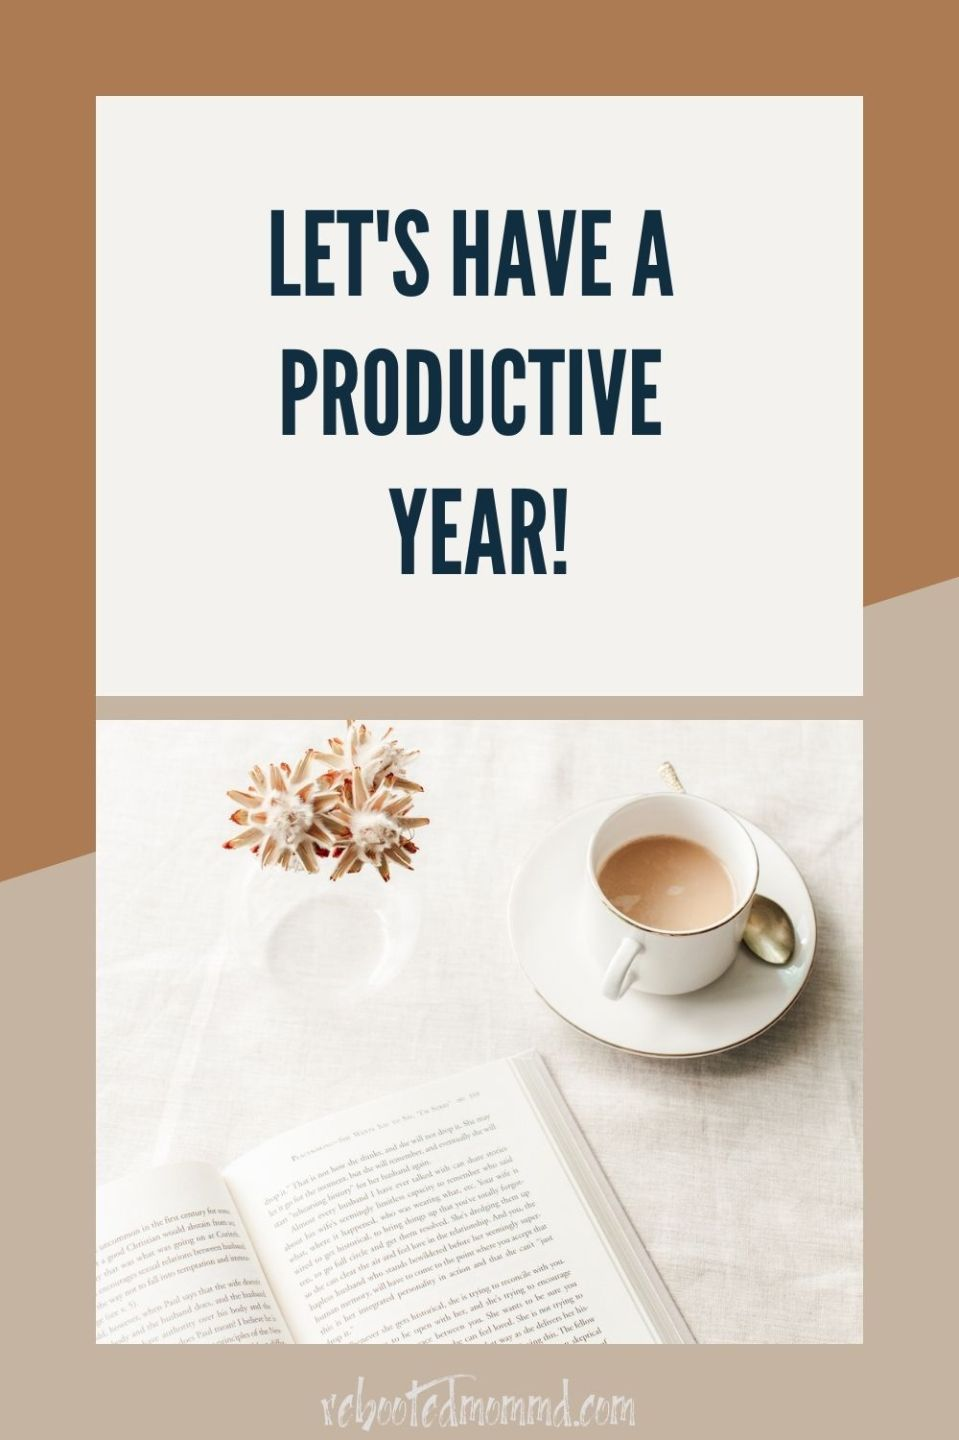 How to Have a Productive Year